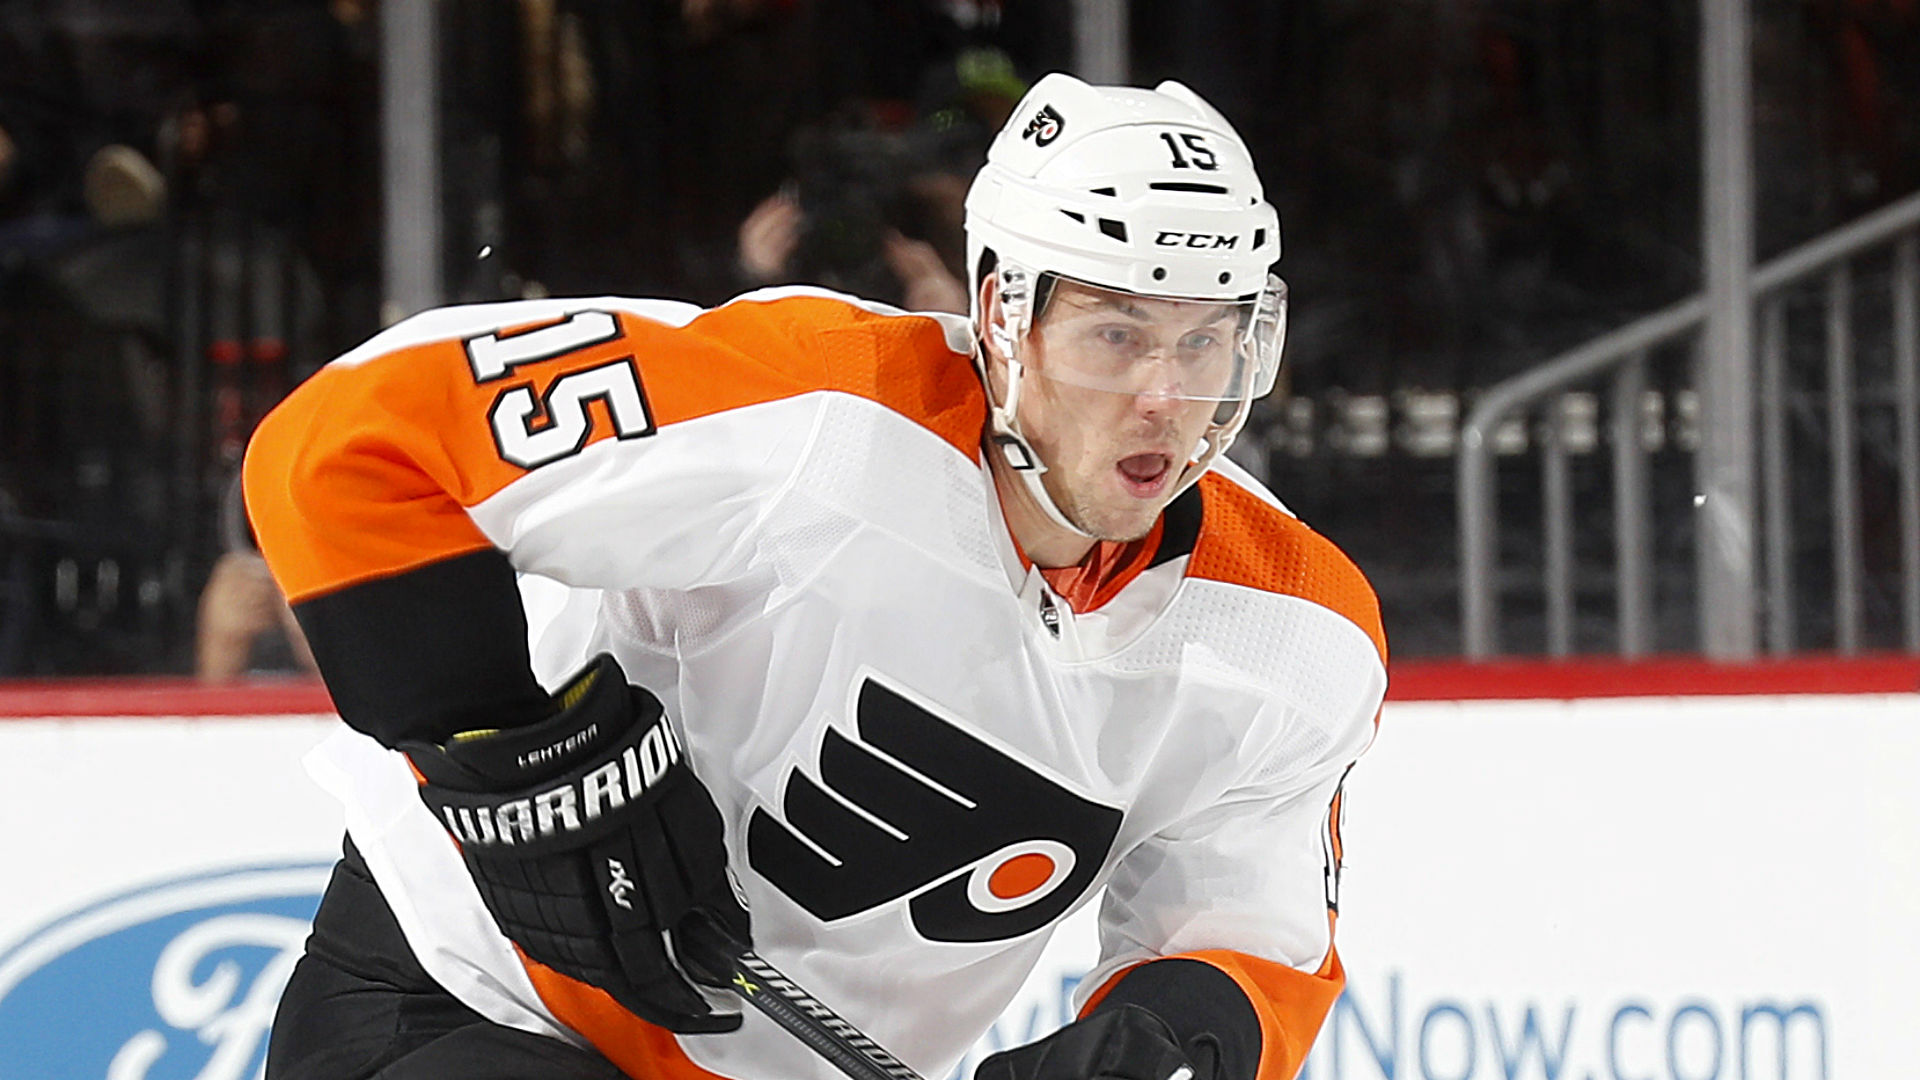 NHL's Jori Lehtera Questioned Over Suspected Cocaine Ring in Finland